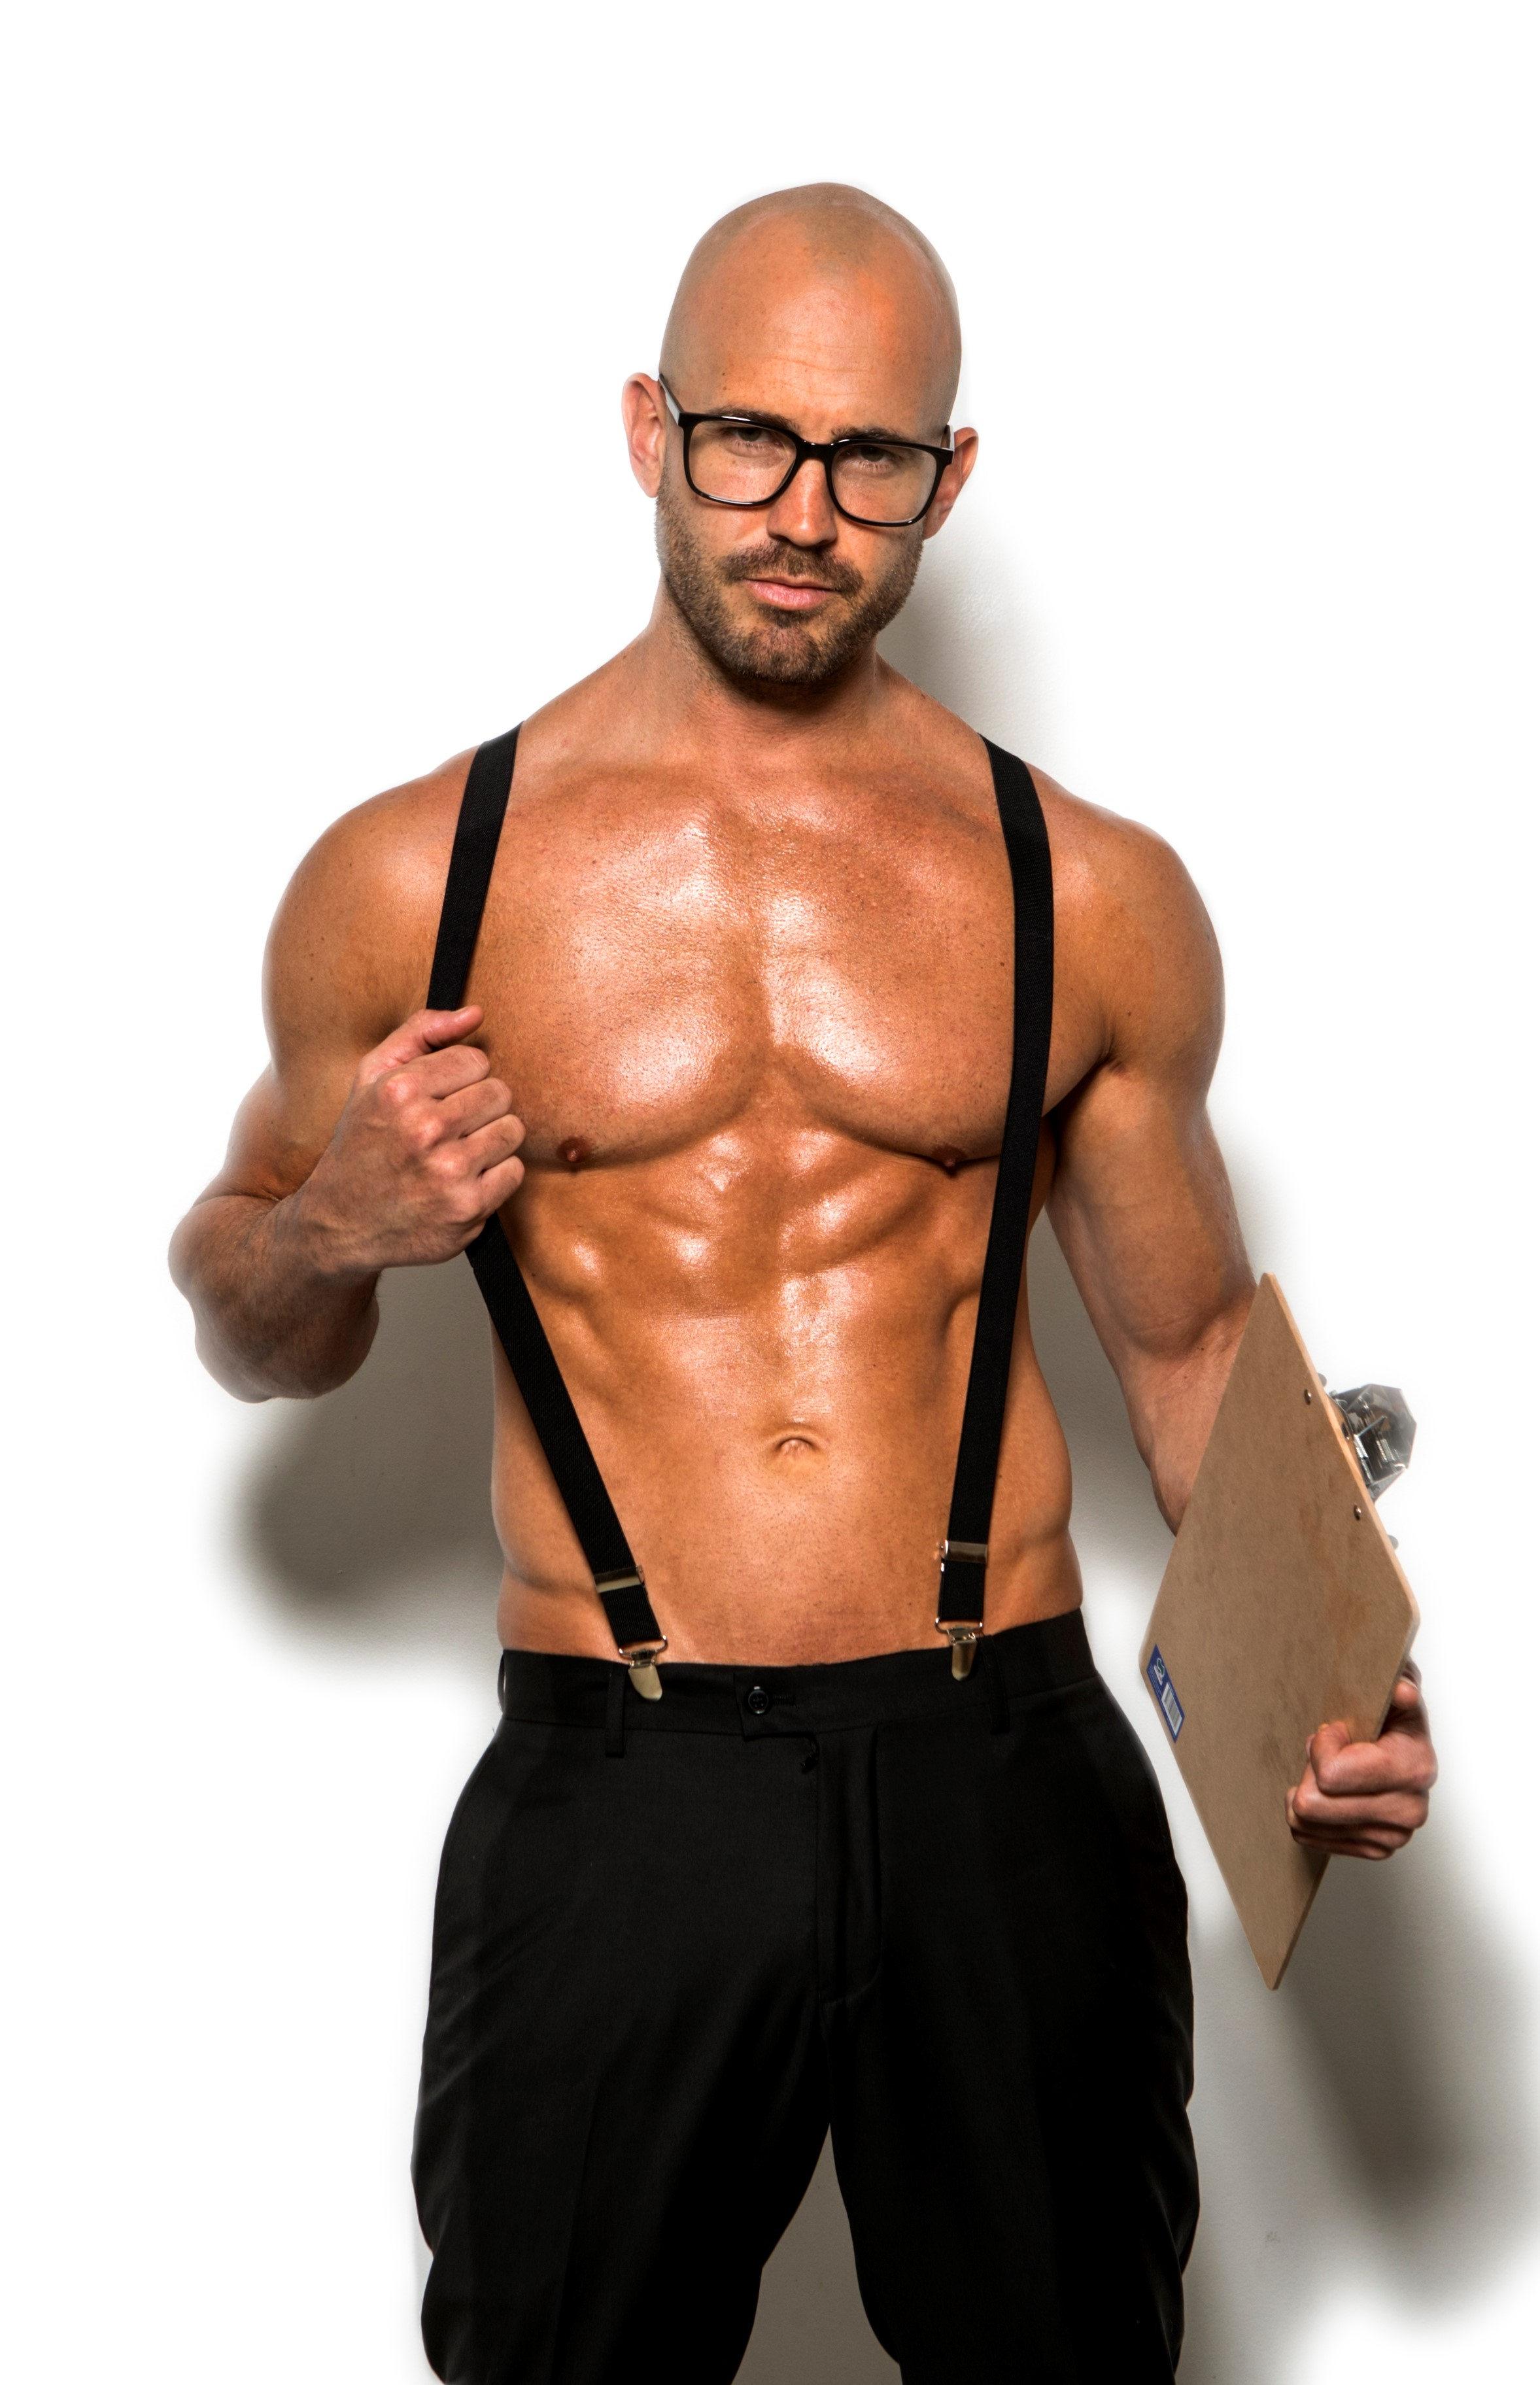 Brisbane City Male Stripper For Hire - Doctor Theme!